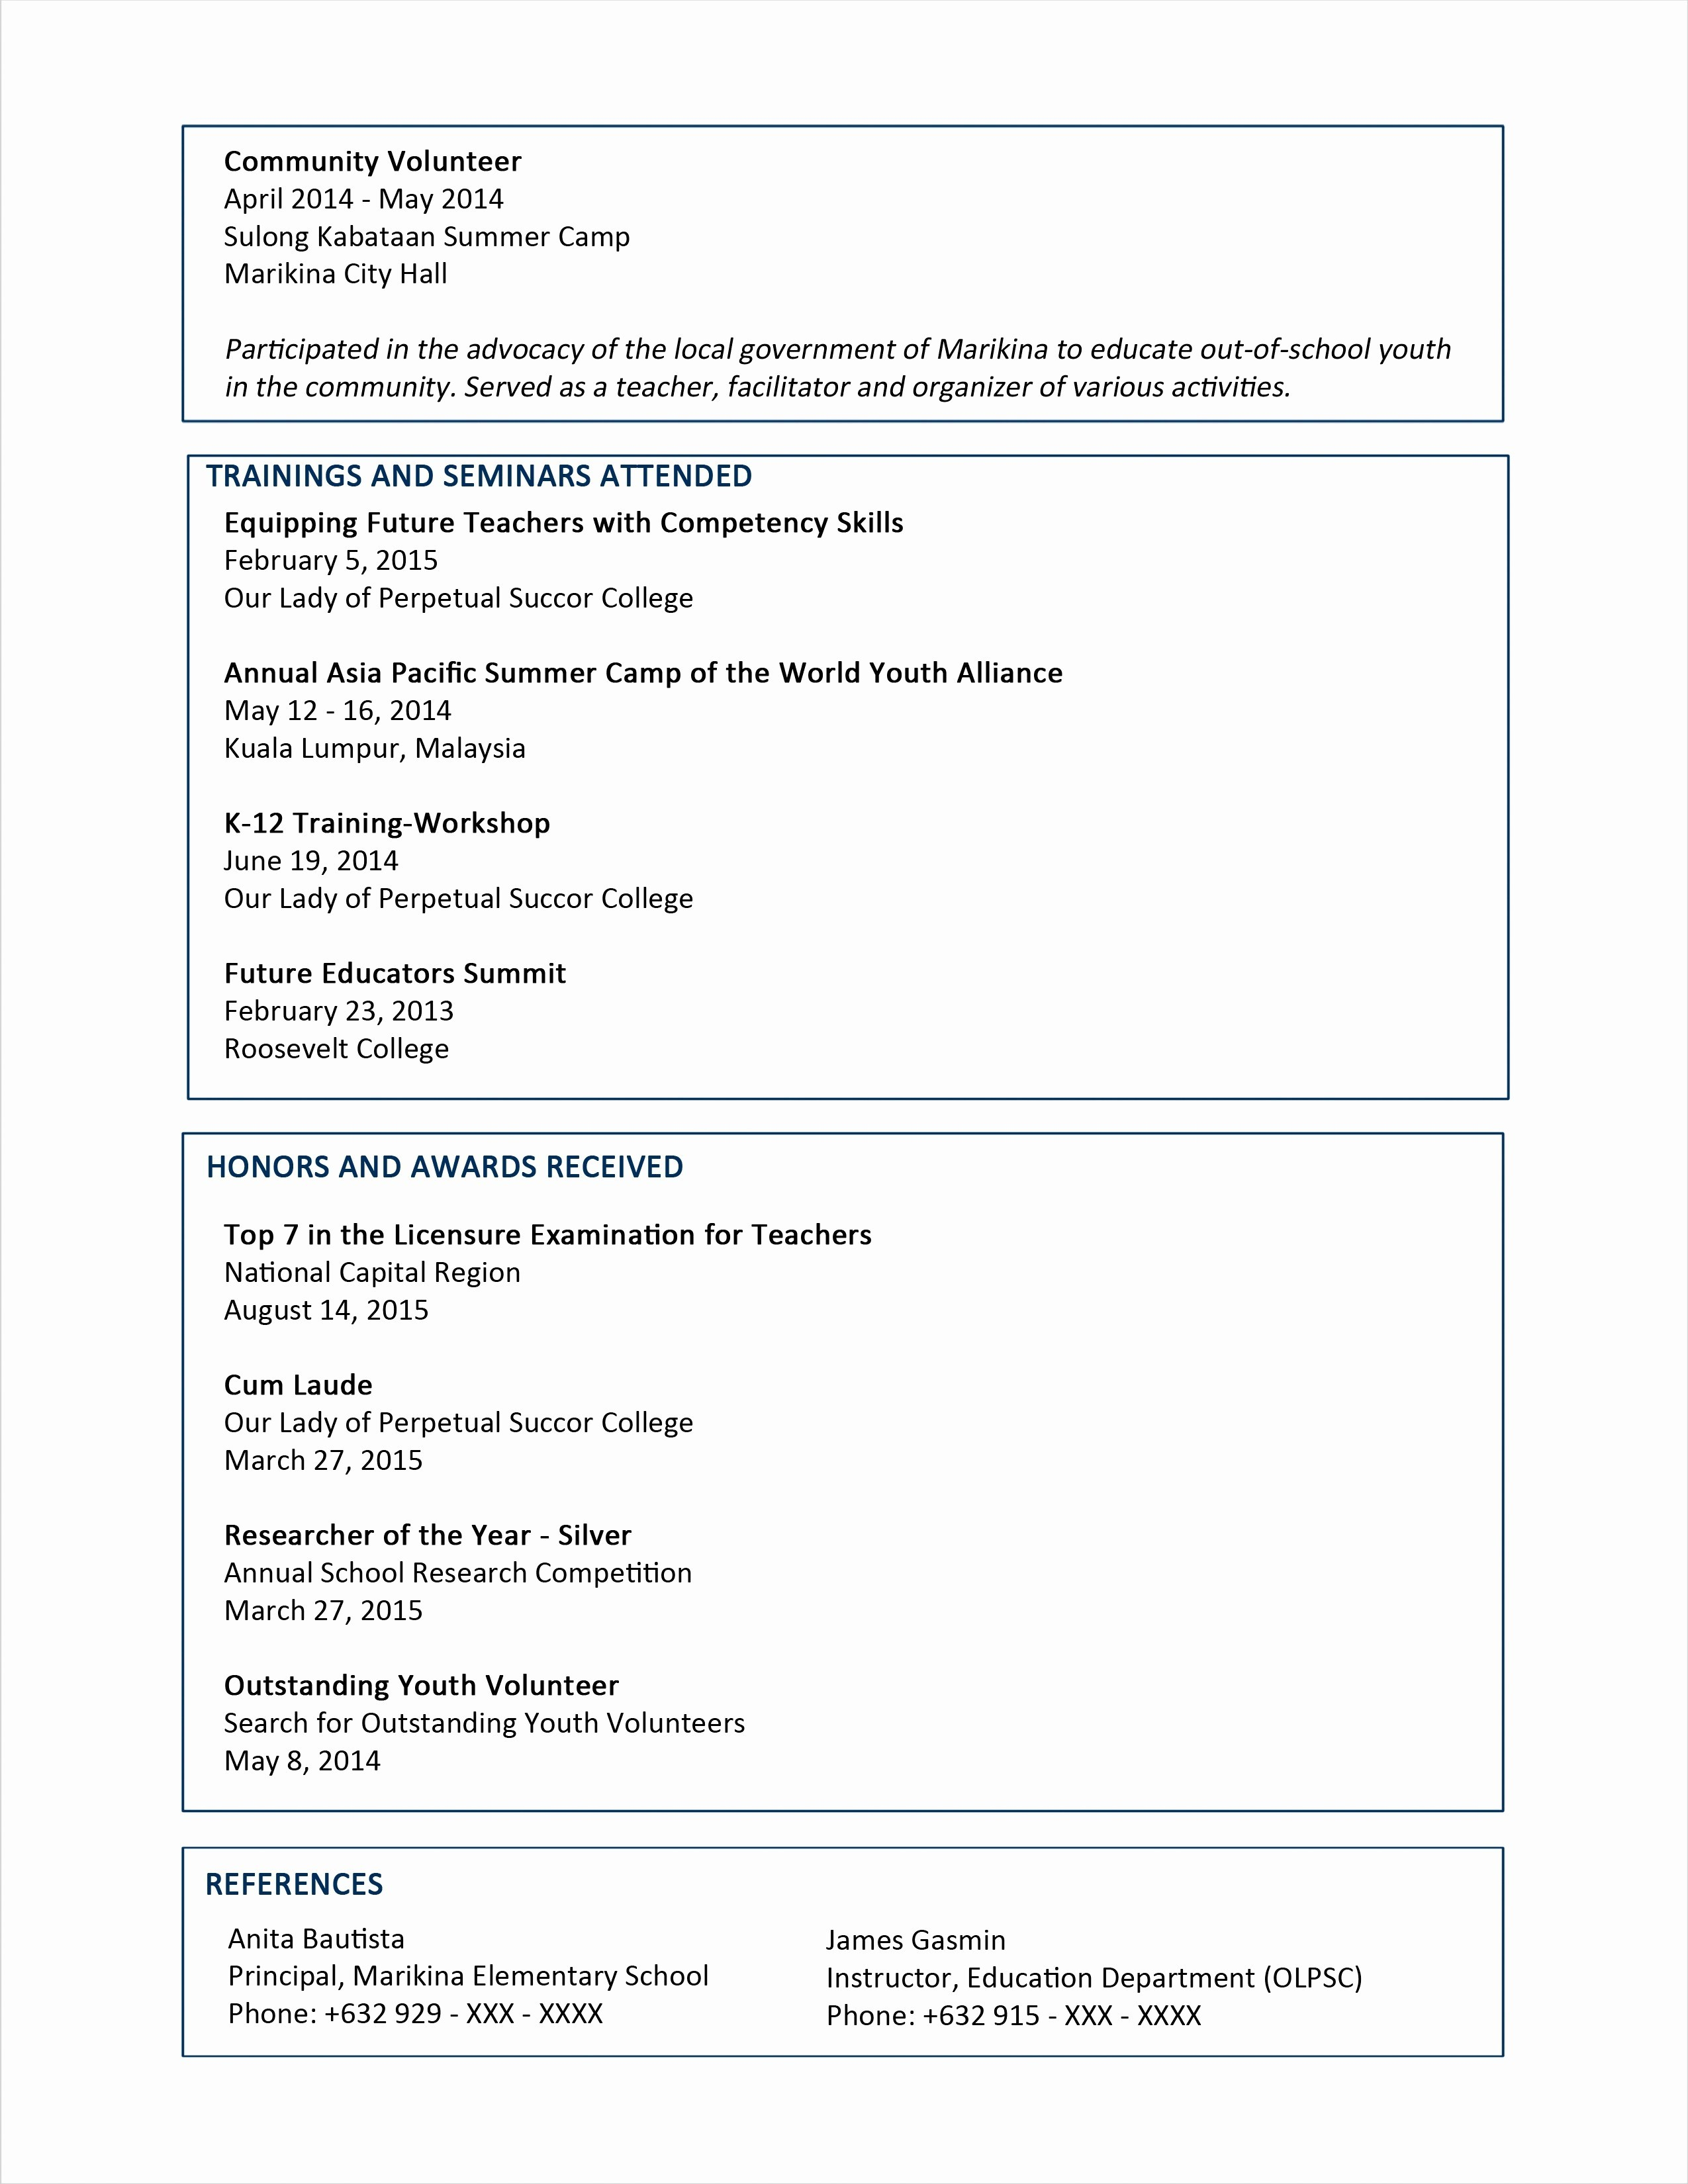 spanish resume template Collection-Best Examples Resumes Ecologist Resume 0d Creating A Resume 14-a